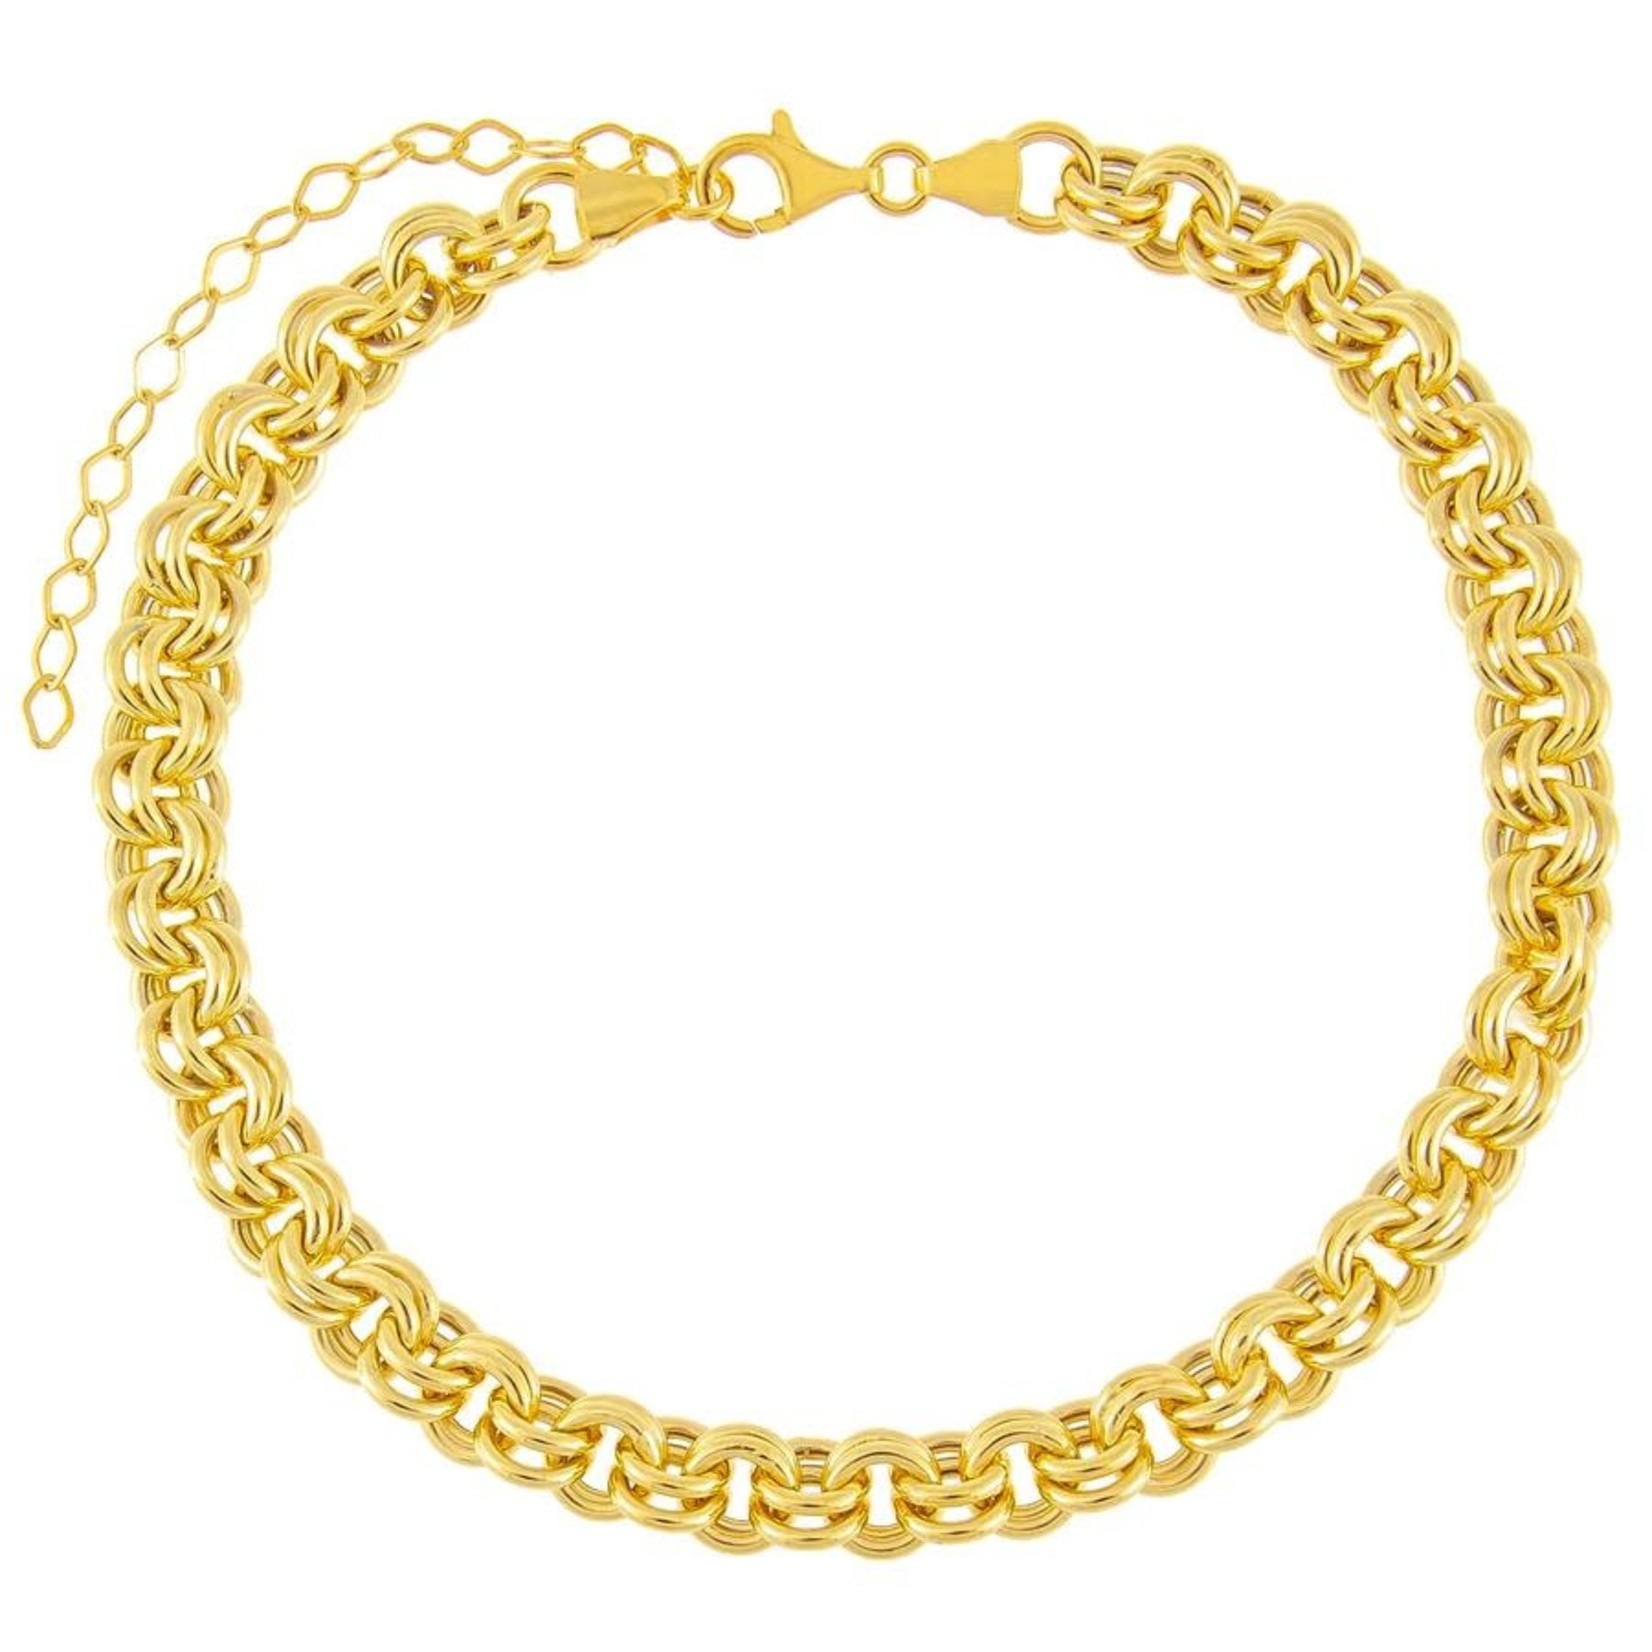 Adinas Hollow Rounded Rolo Chain Choker